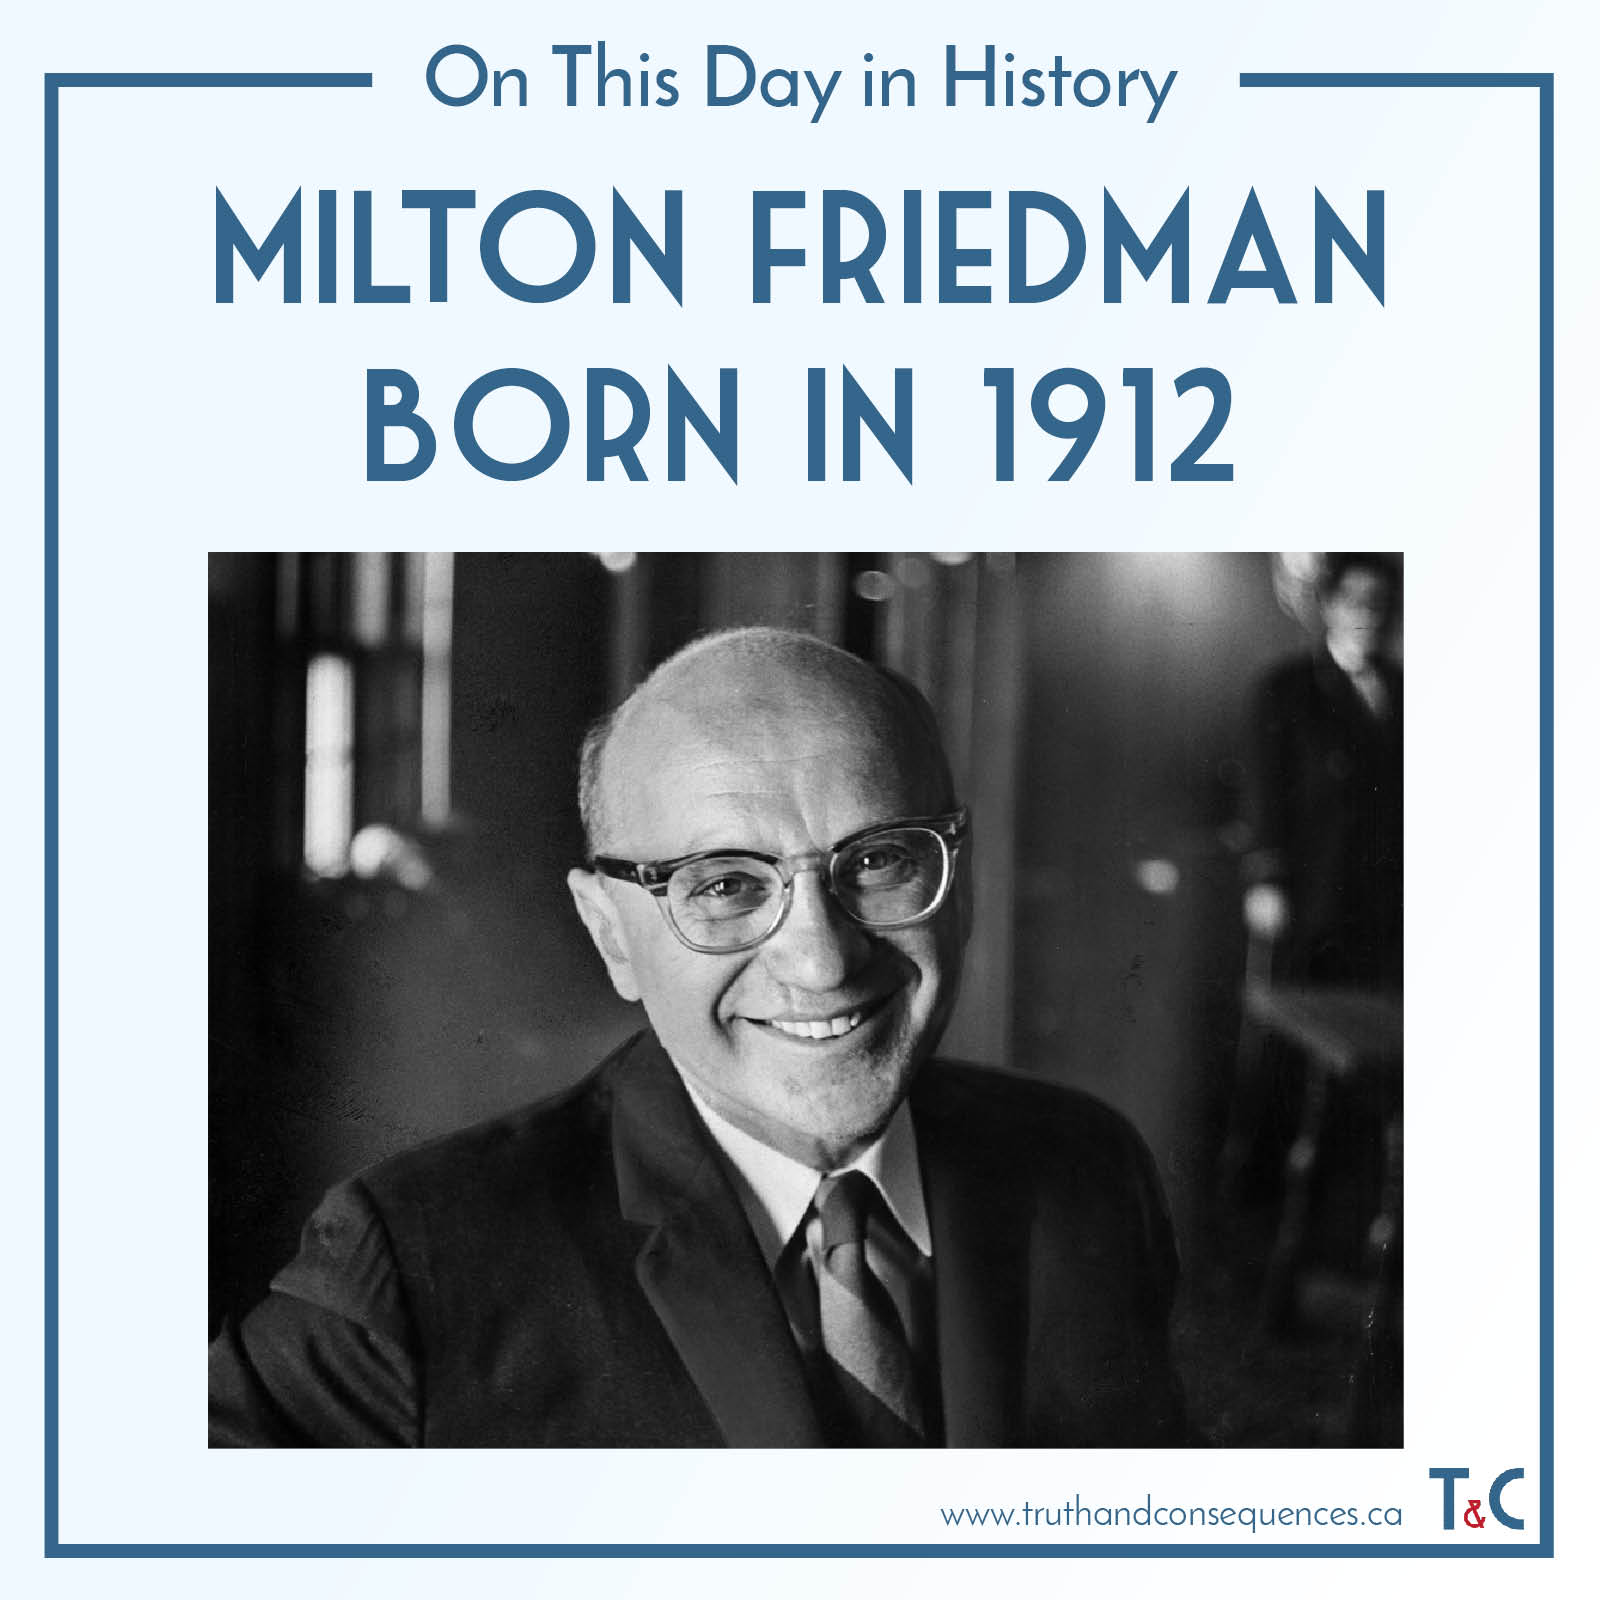 Milton Friedman Born in 1912